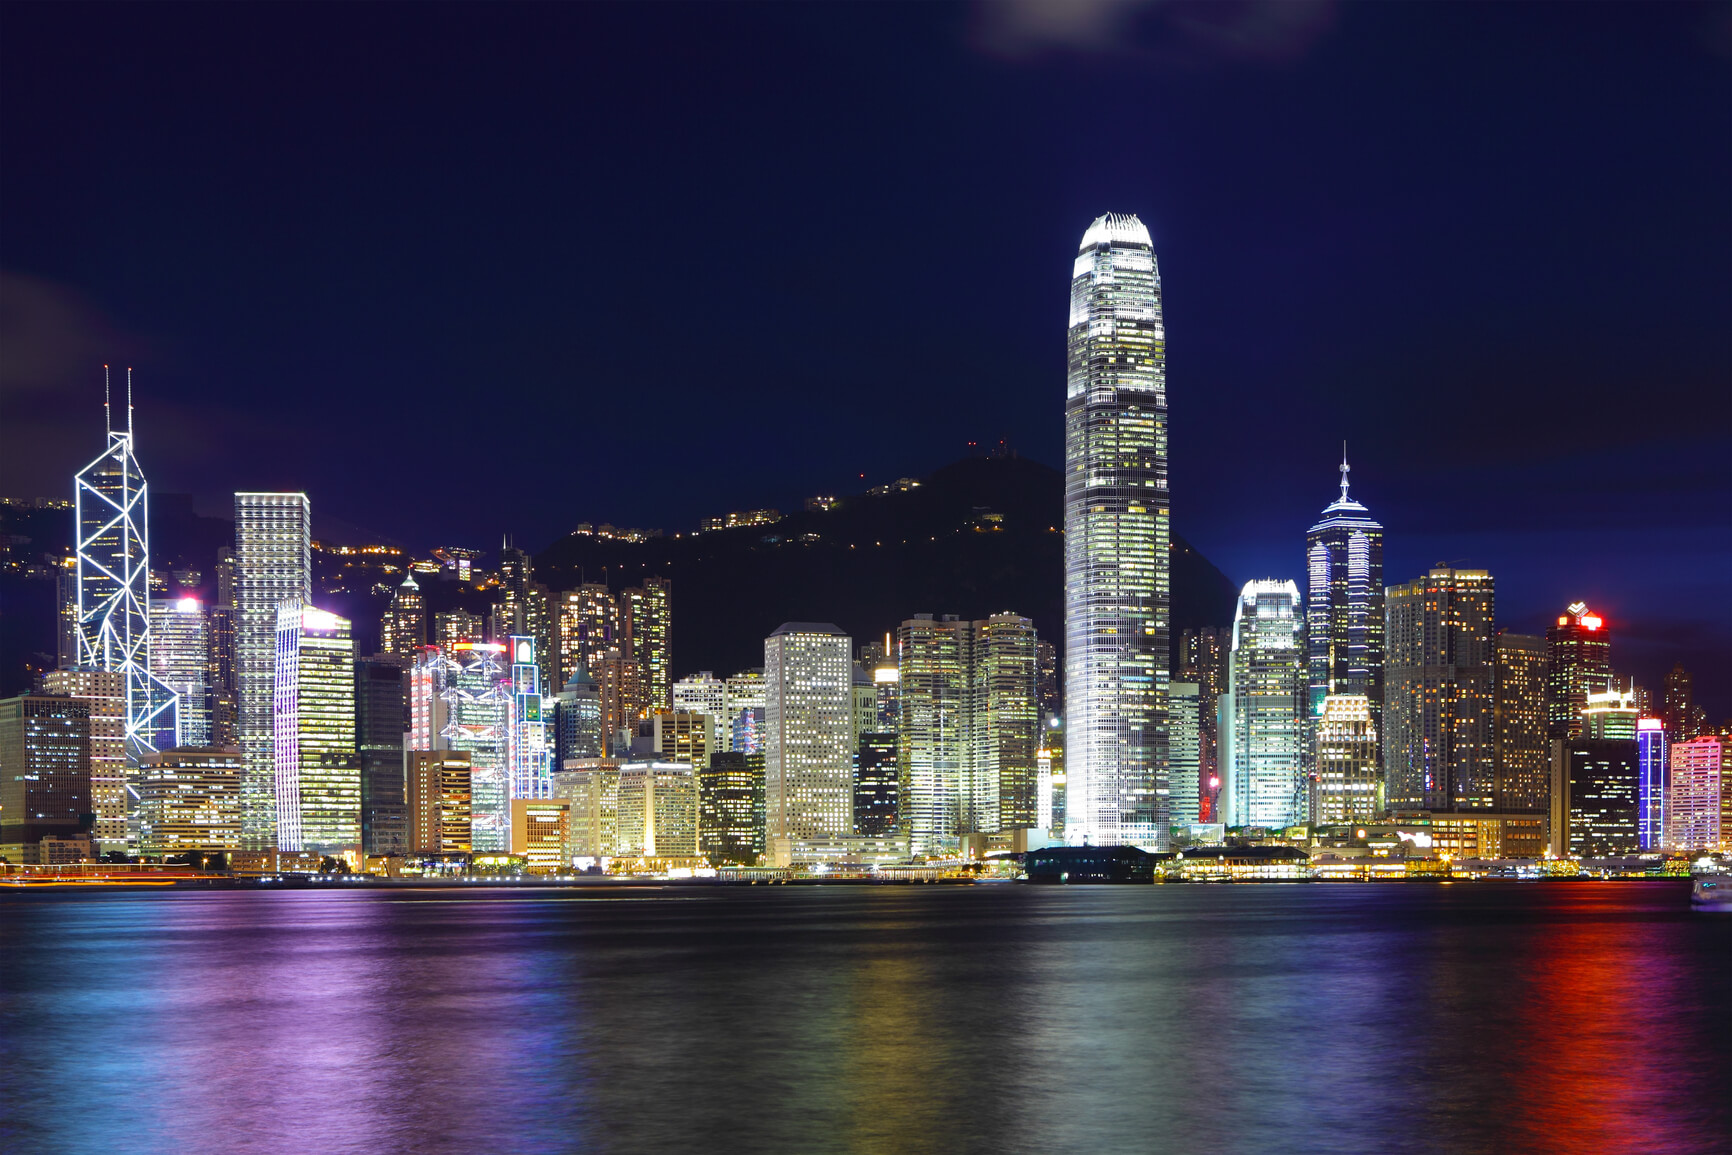 SUMMER: Non-stop from Australia to Hong Kong from only $684 AUD roundtrip